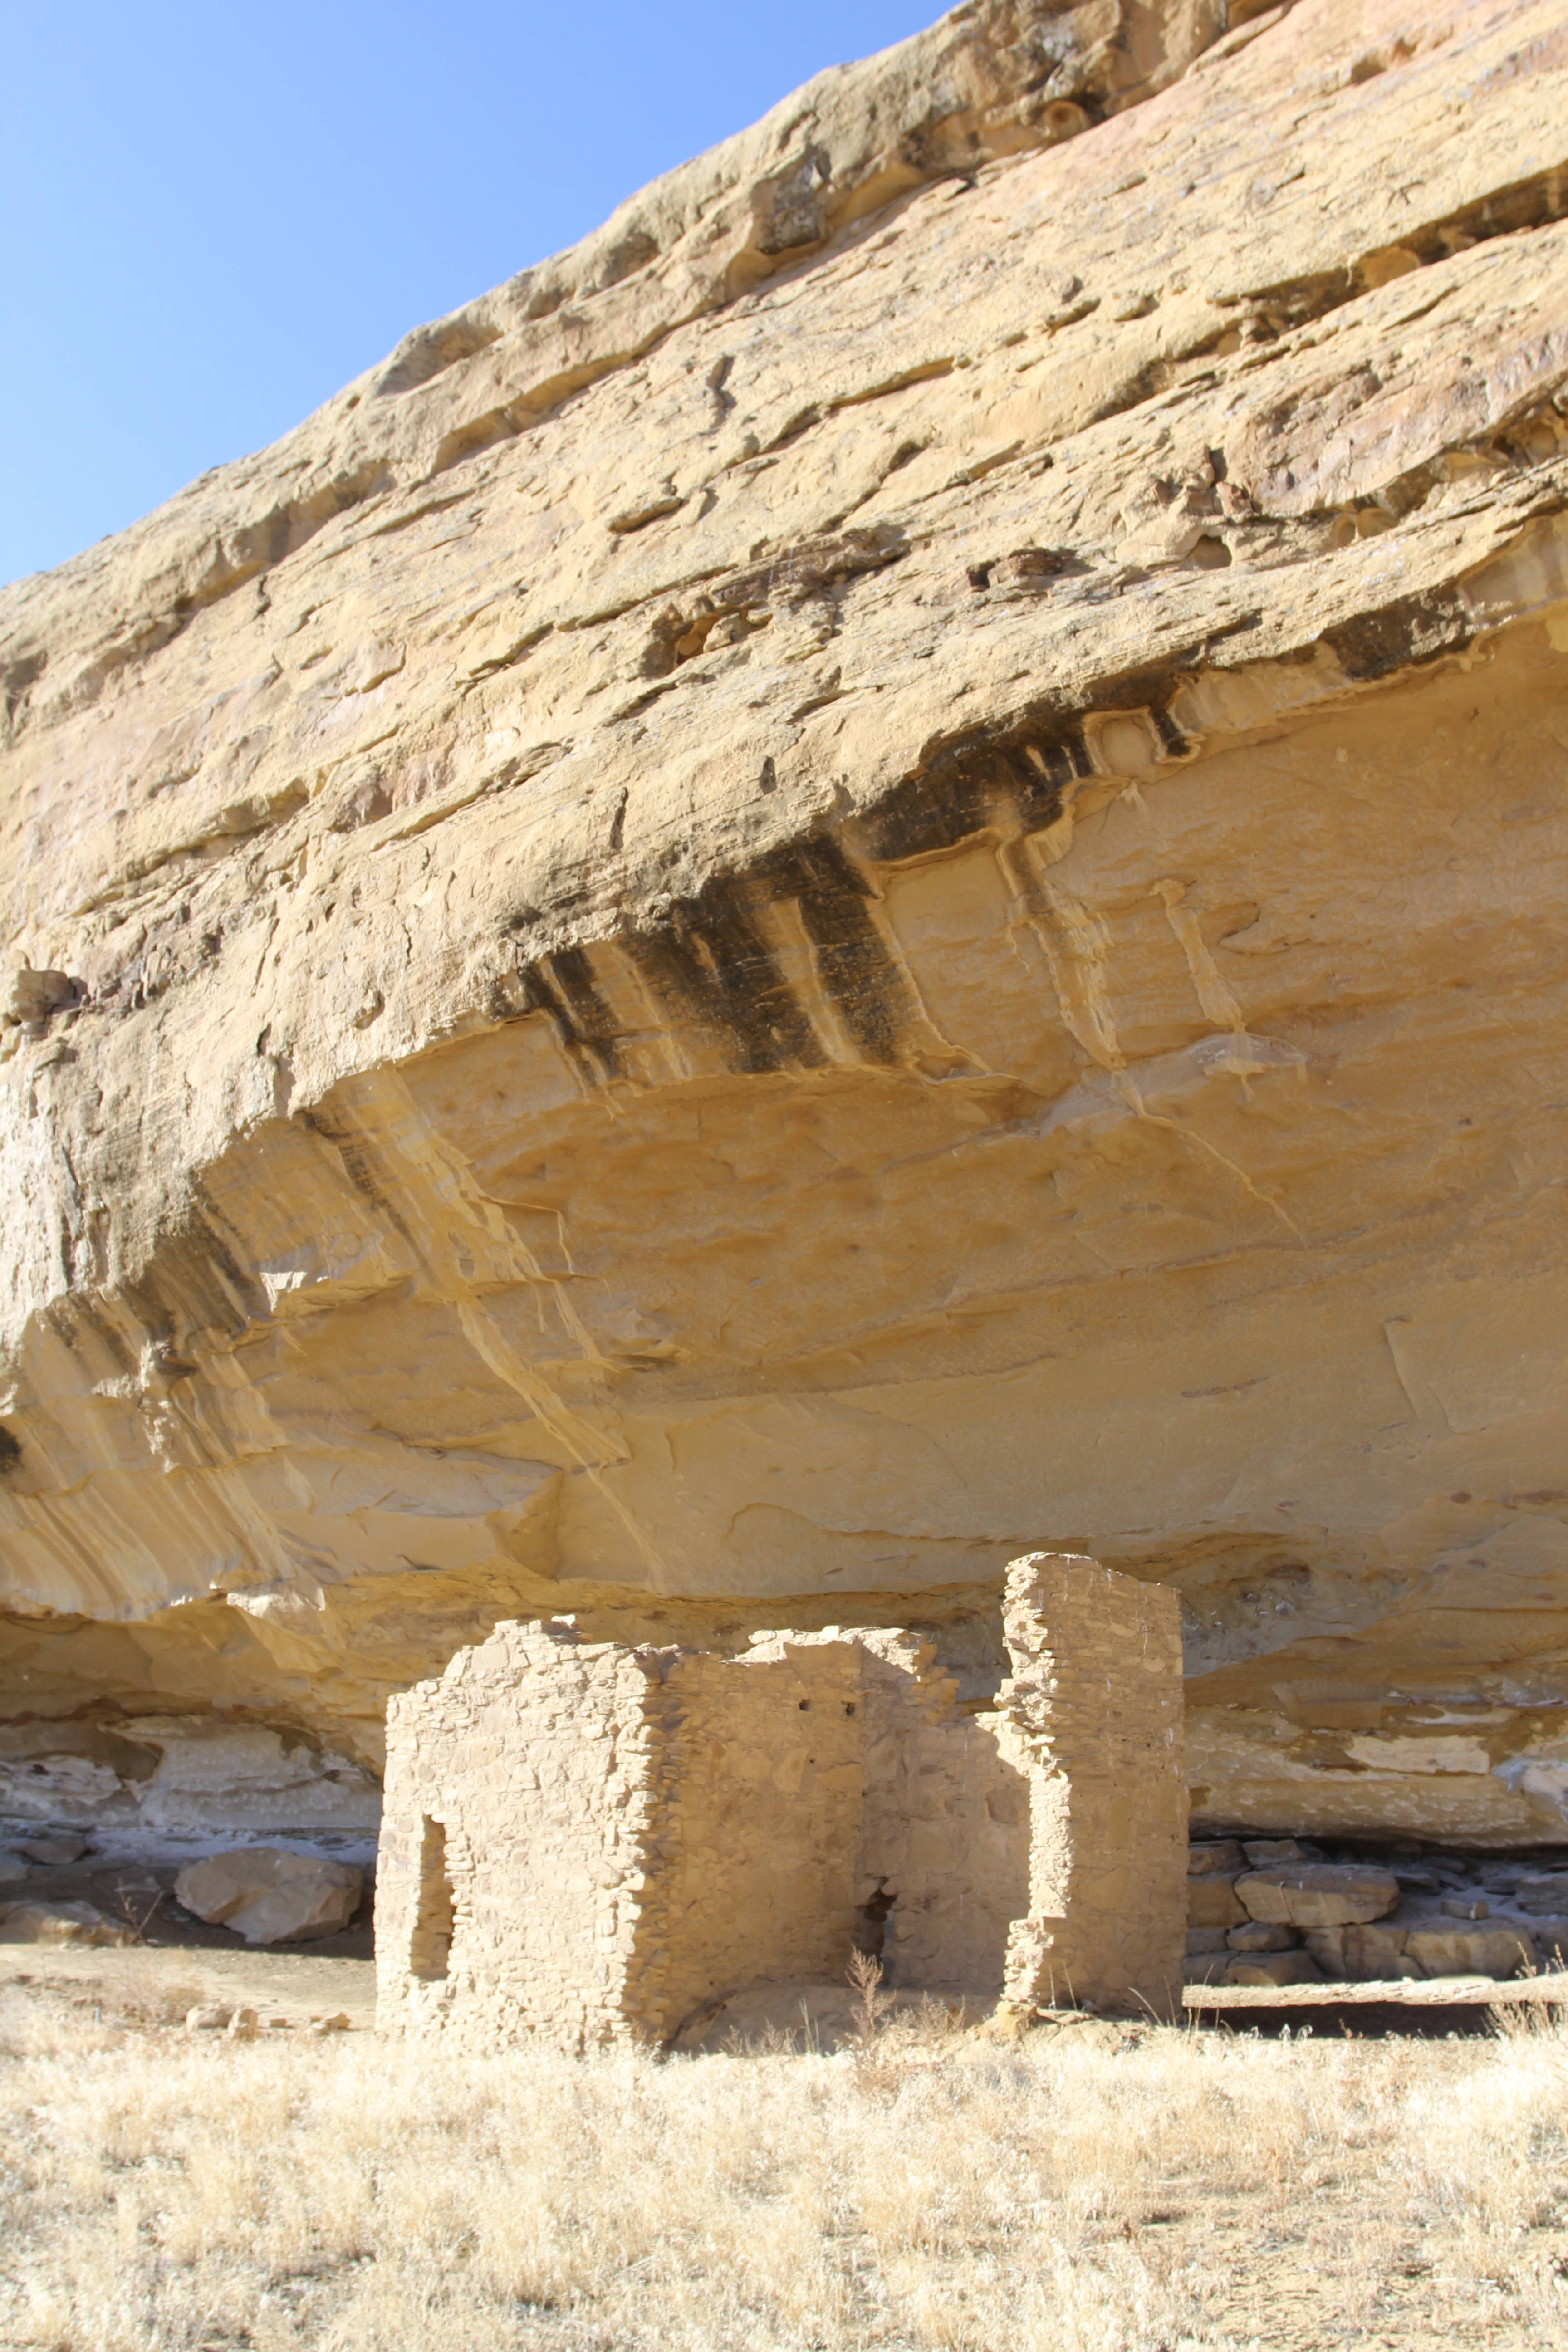 An ancient Chacoan alcove house at Gallo campground in Chaco Canyon